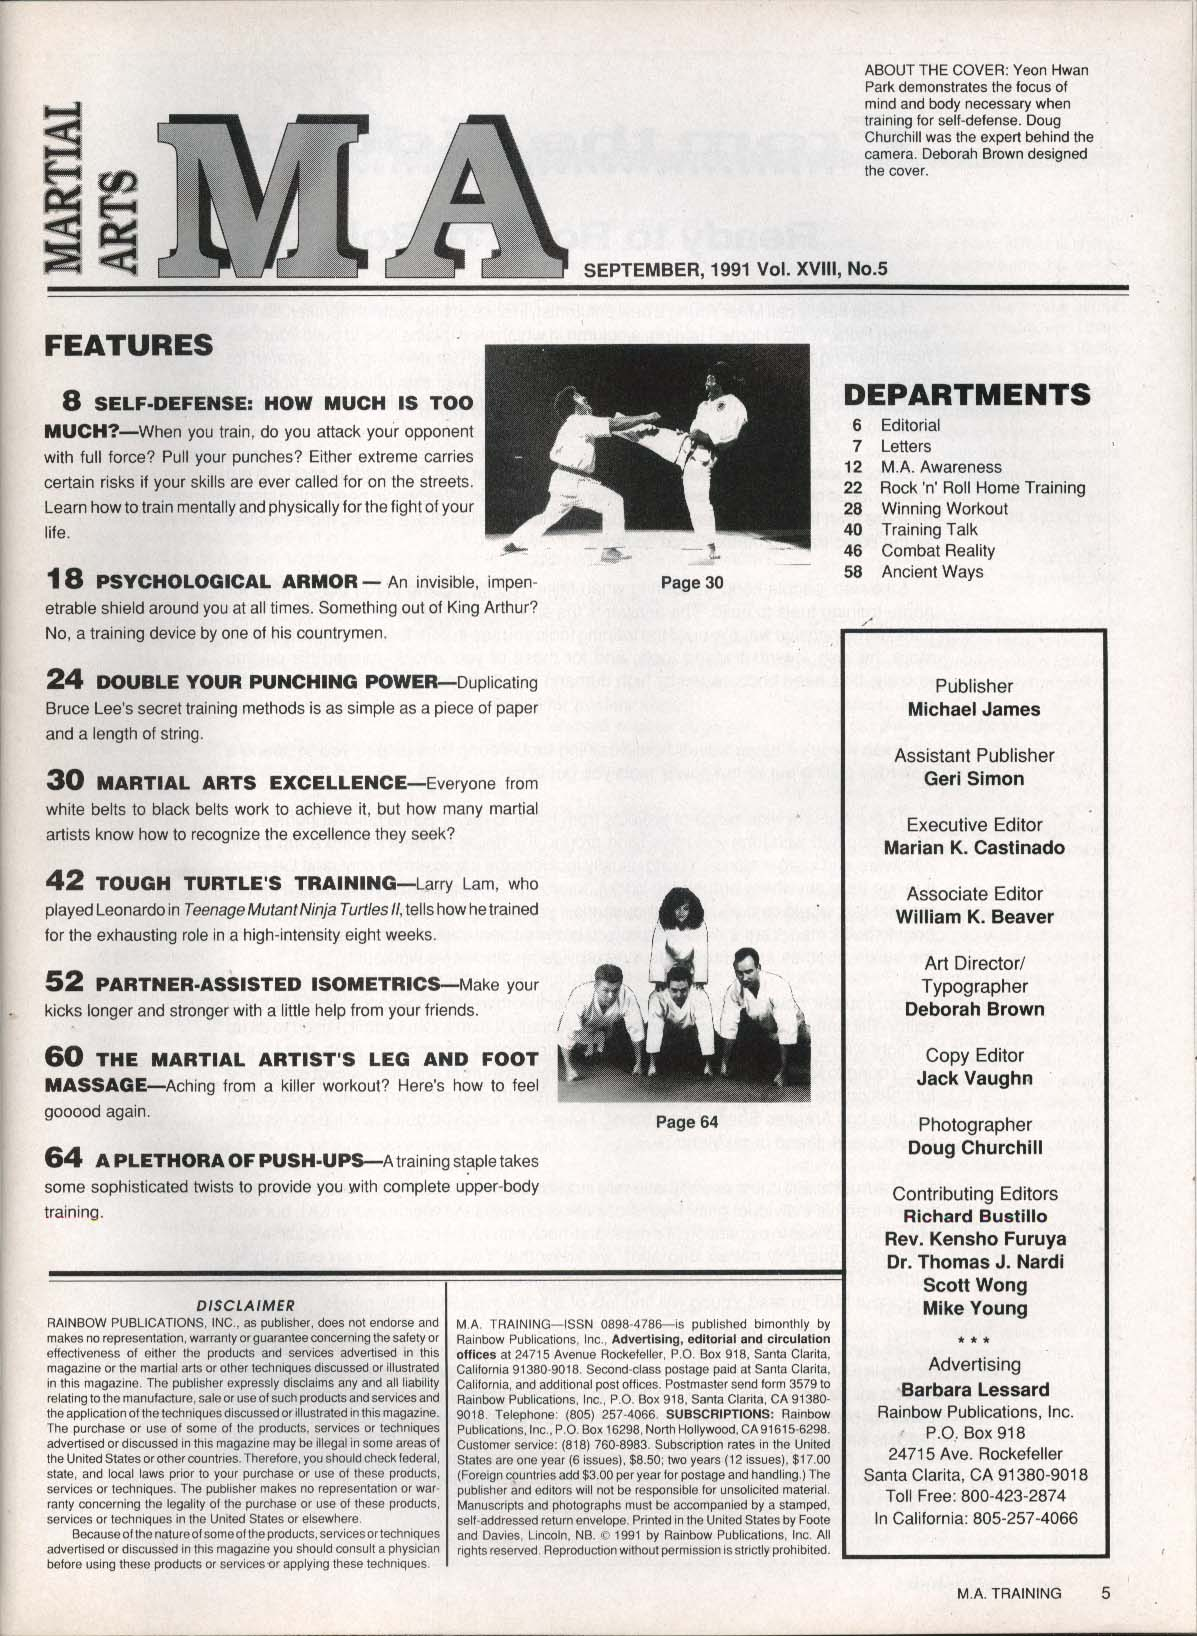 Image for MARTIAL ARTS MA TRAINING Bruce Lee Mike Young Larry Lam Ninja Turtles 9 1991